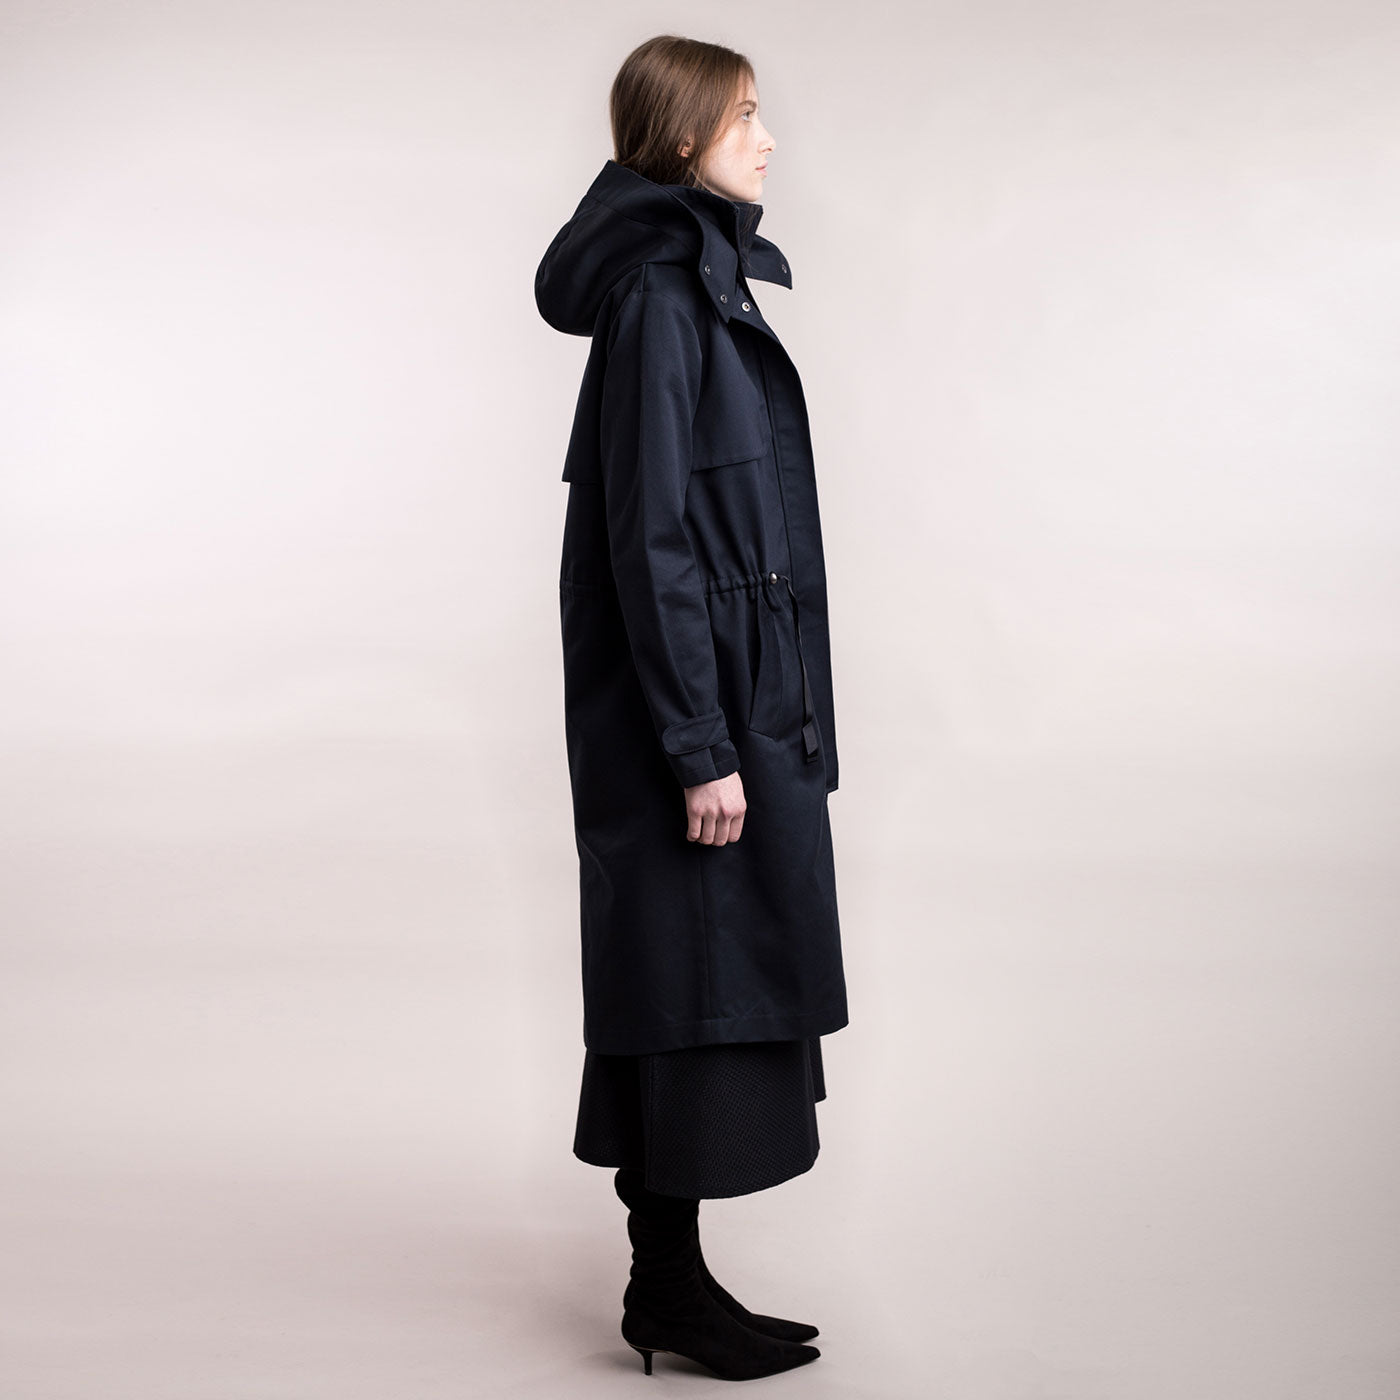 The model wears a dark blue sustainable organic cotton hooded water-resistant coat, side view.